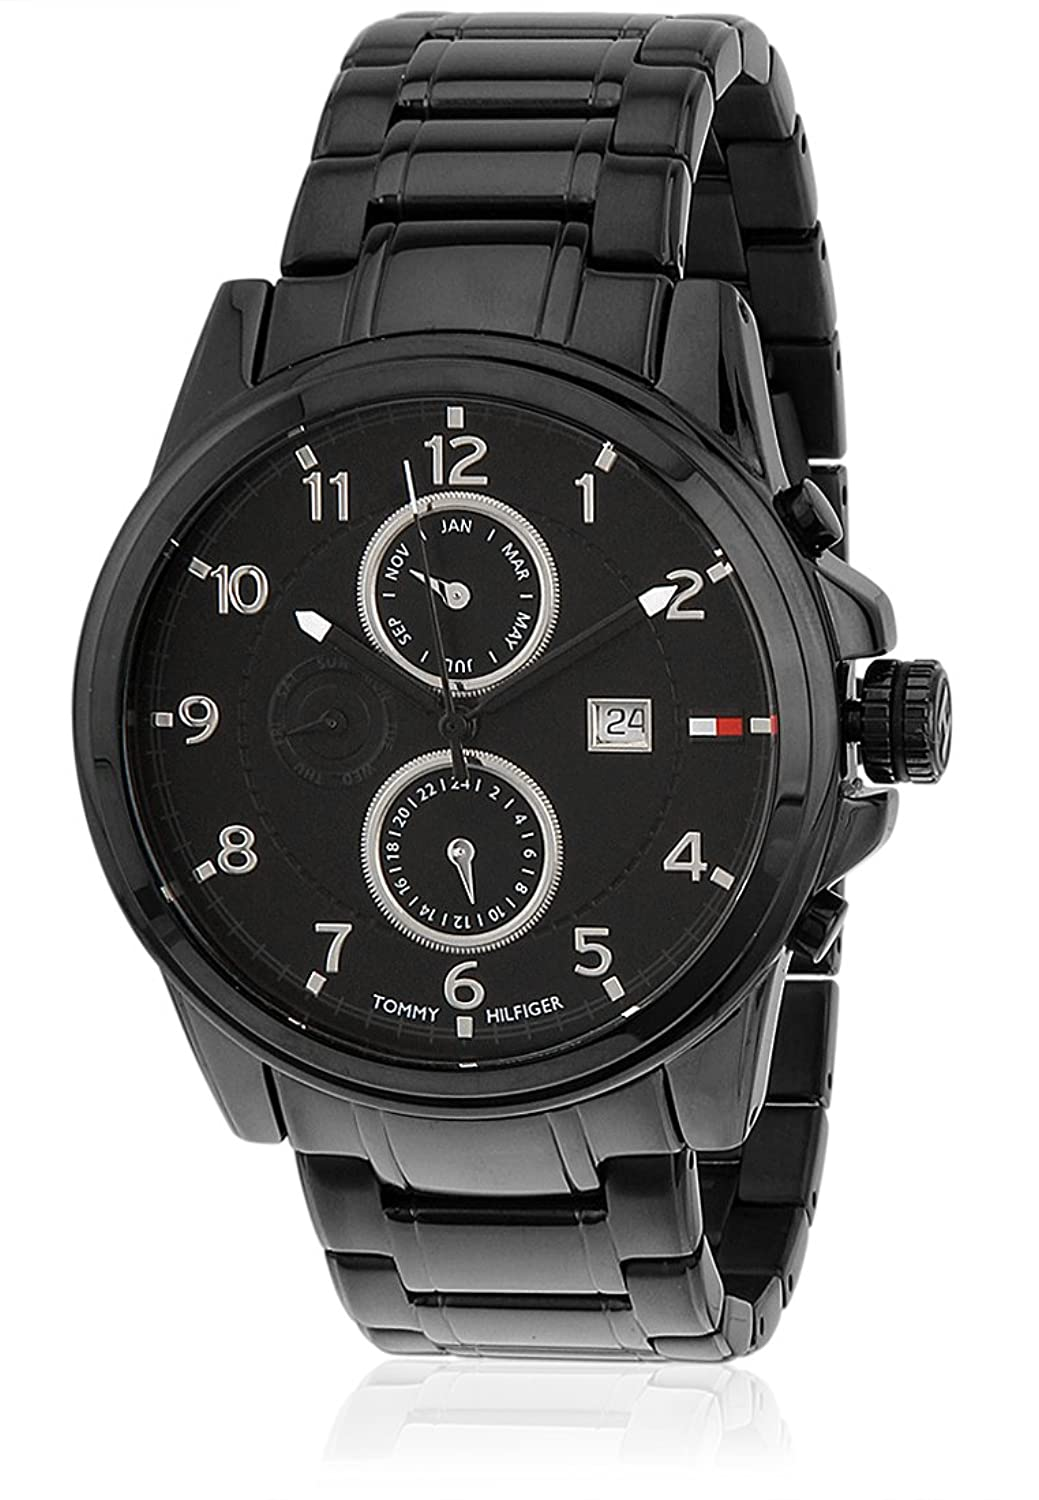 buy tommy hilfiger analog black dial men s watch th1790961j buy tommy hilfiger analog black dial men s watch th1790961j online at low prices in amazon in